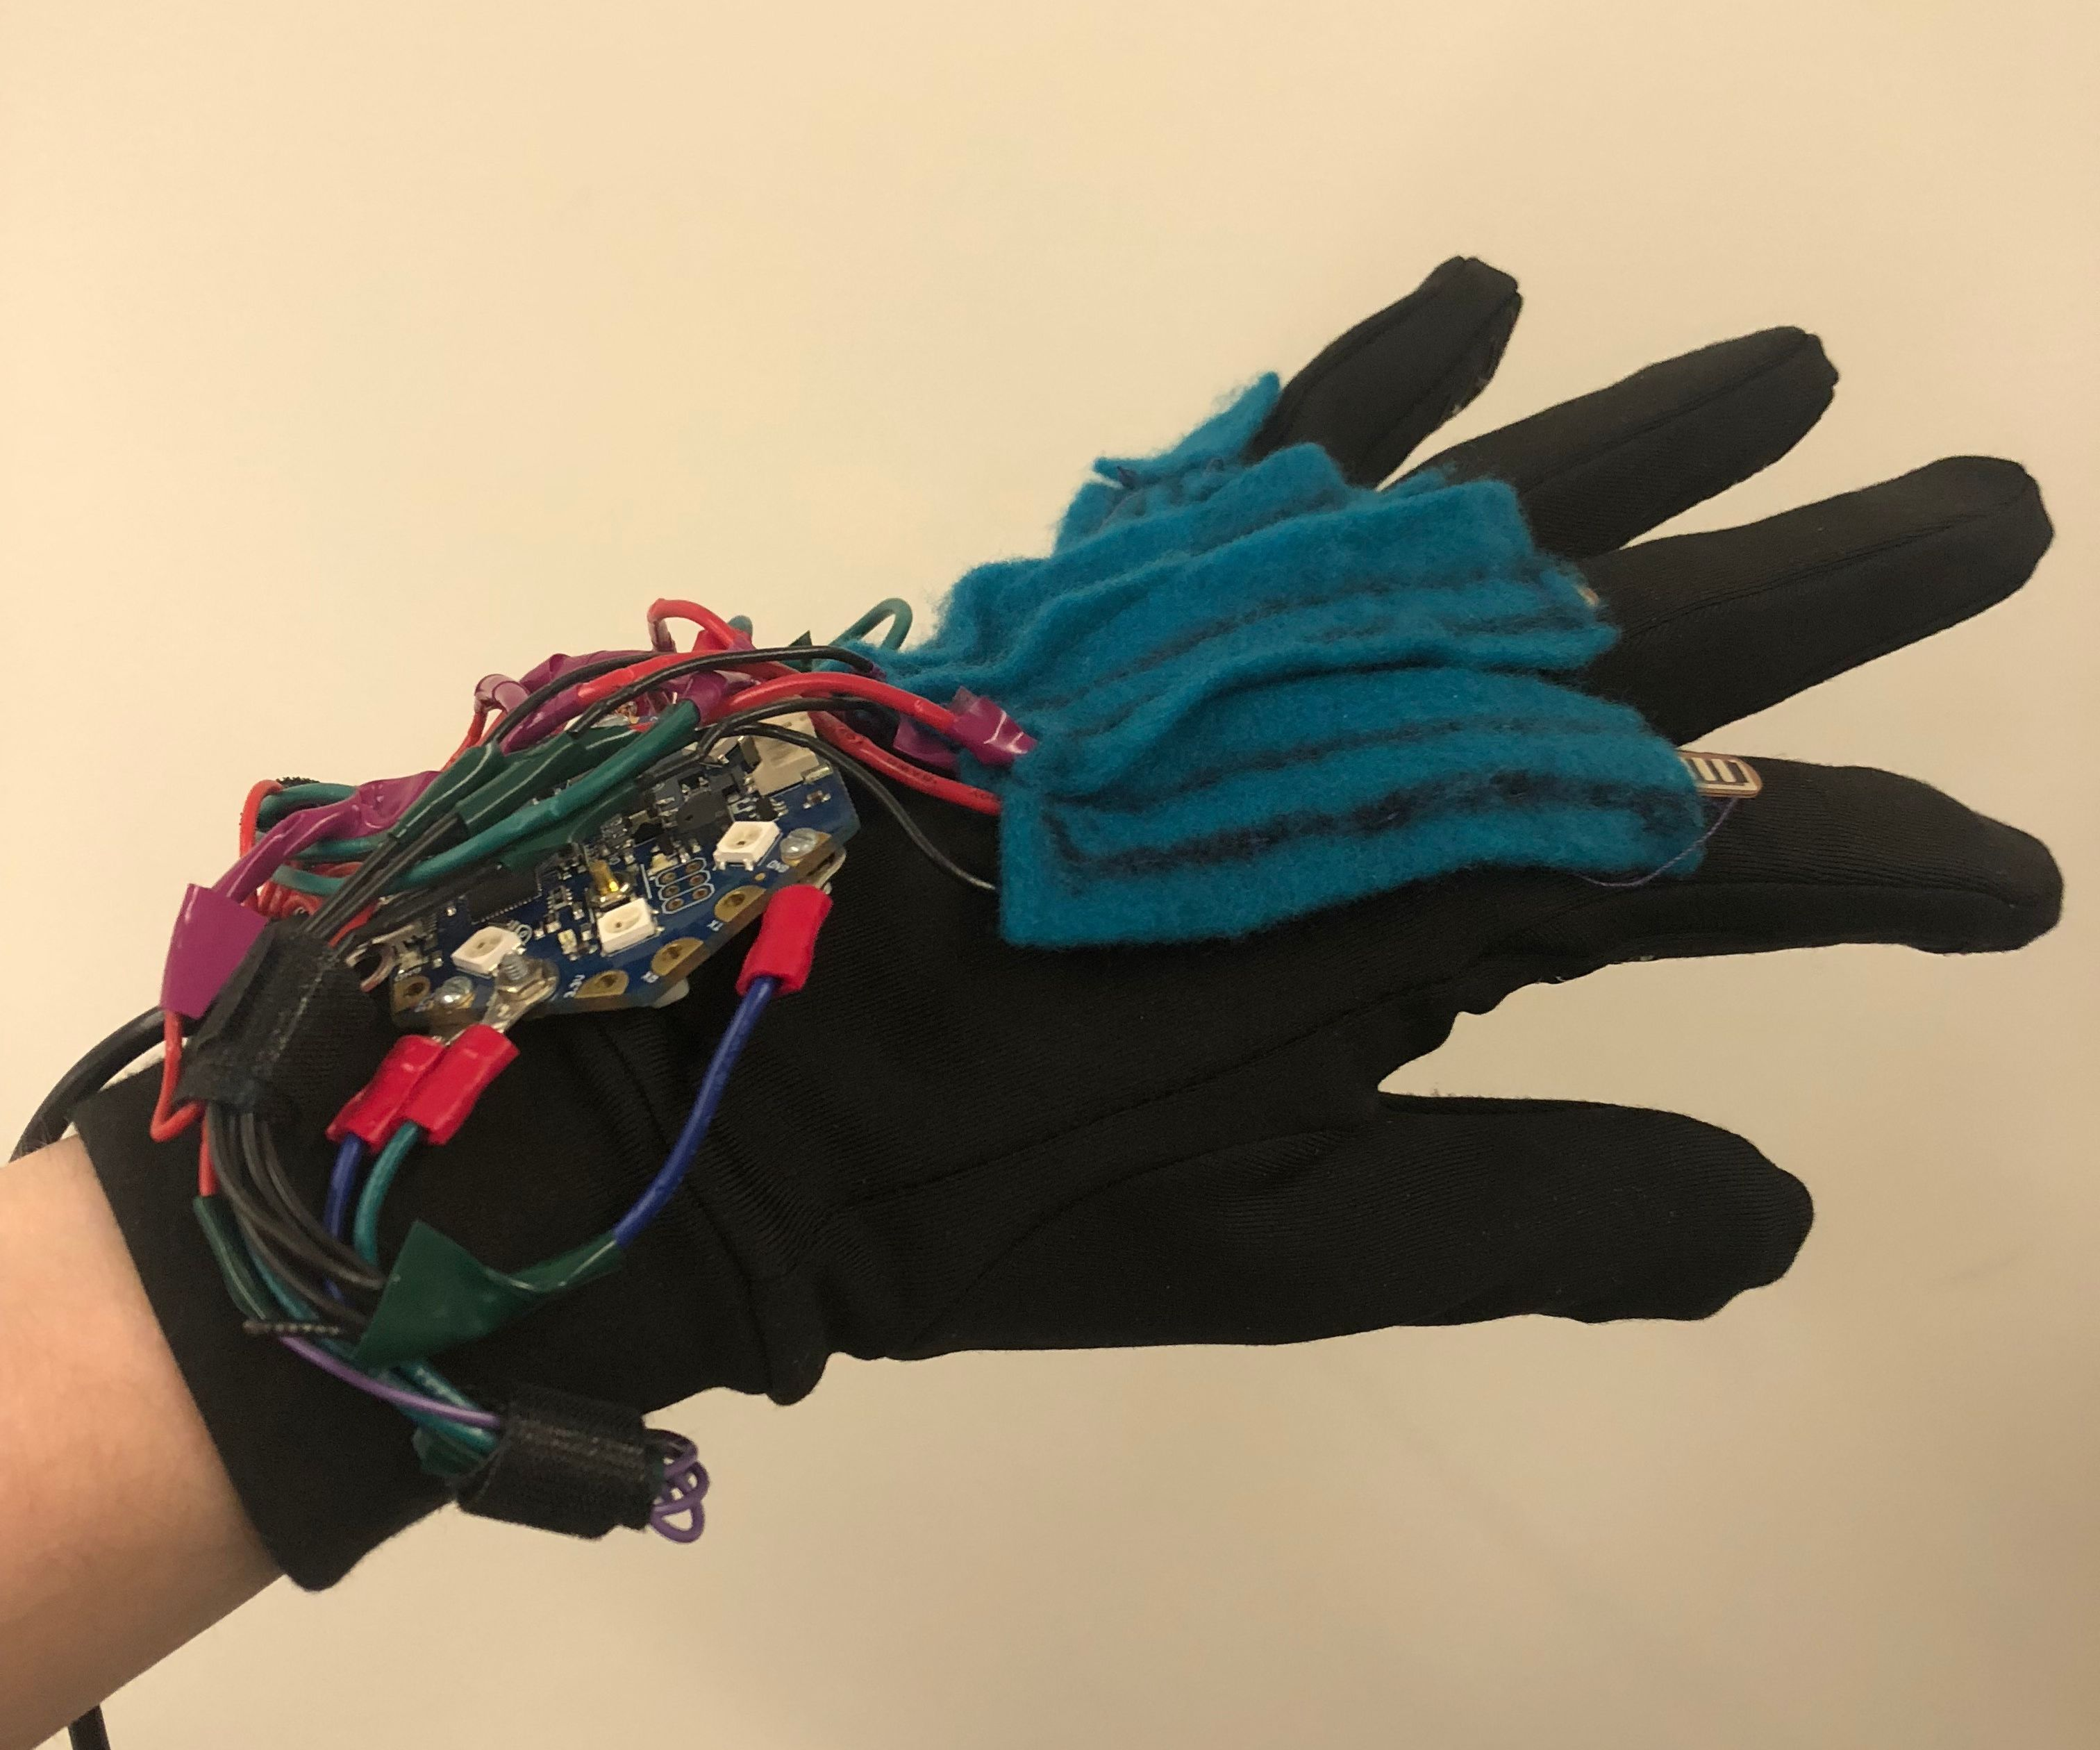 Wearable Tech: Voice-Changing Glove